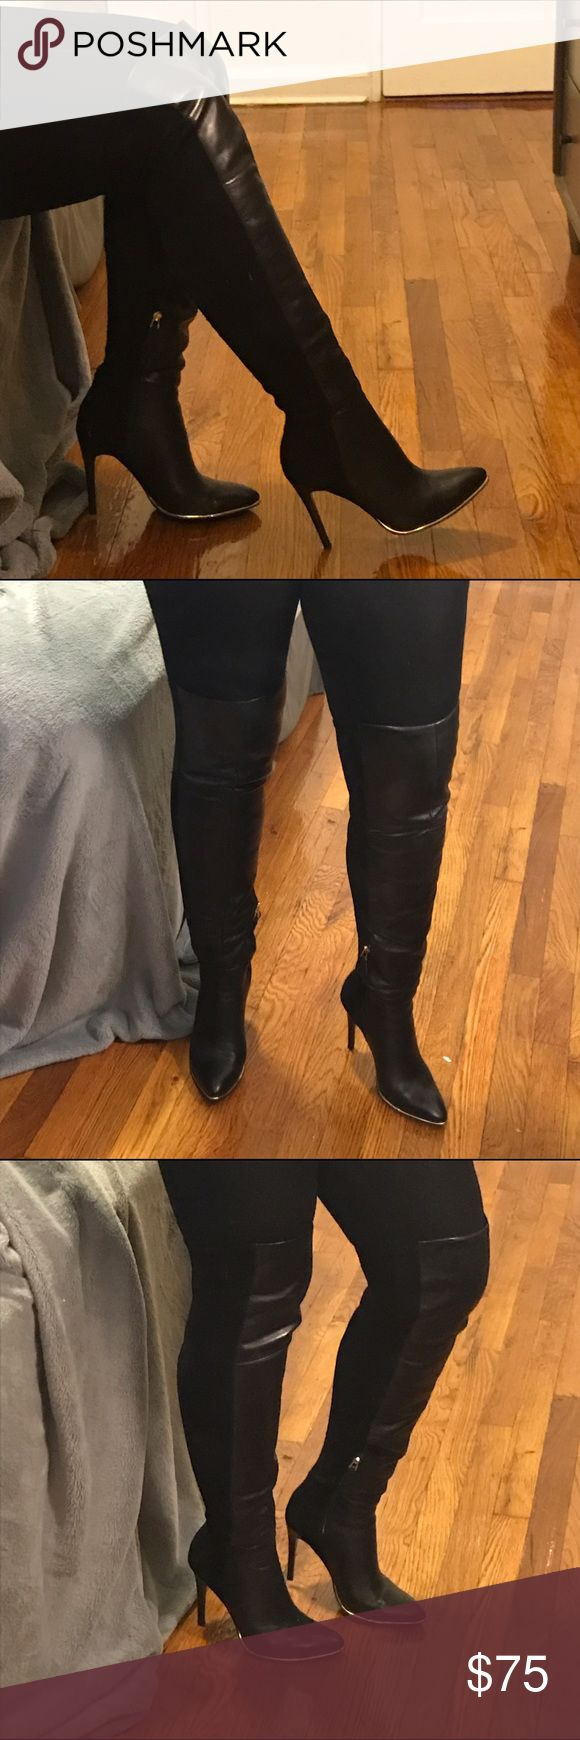 GUESS Thigh High Boots (additional pics) Additional Photos Guess Shoes Over the Knee Boots